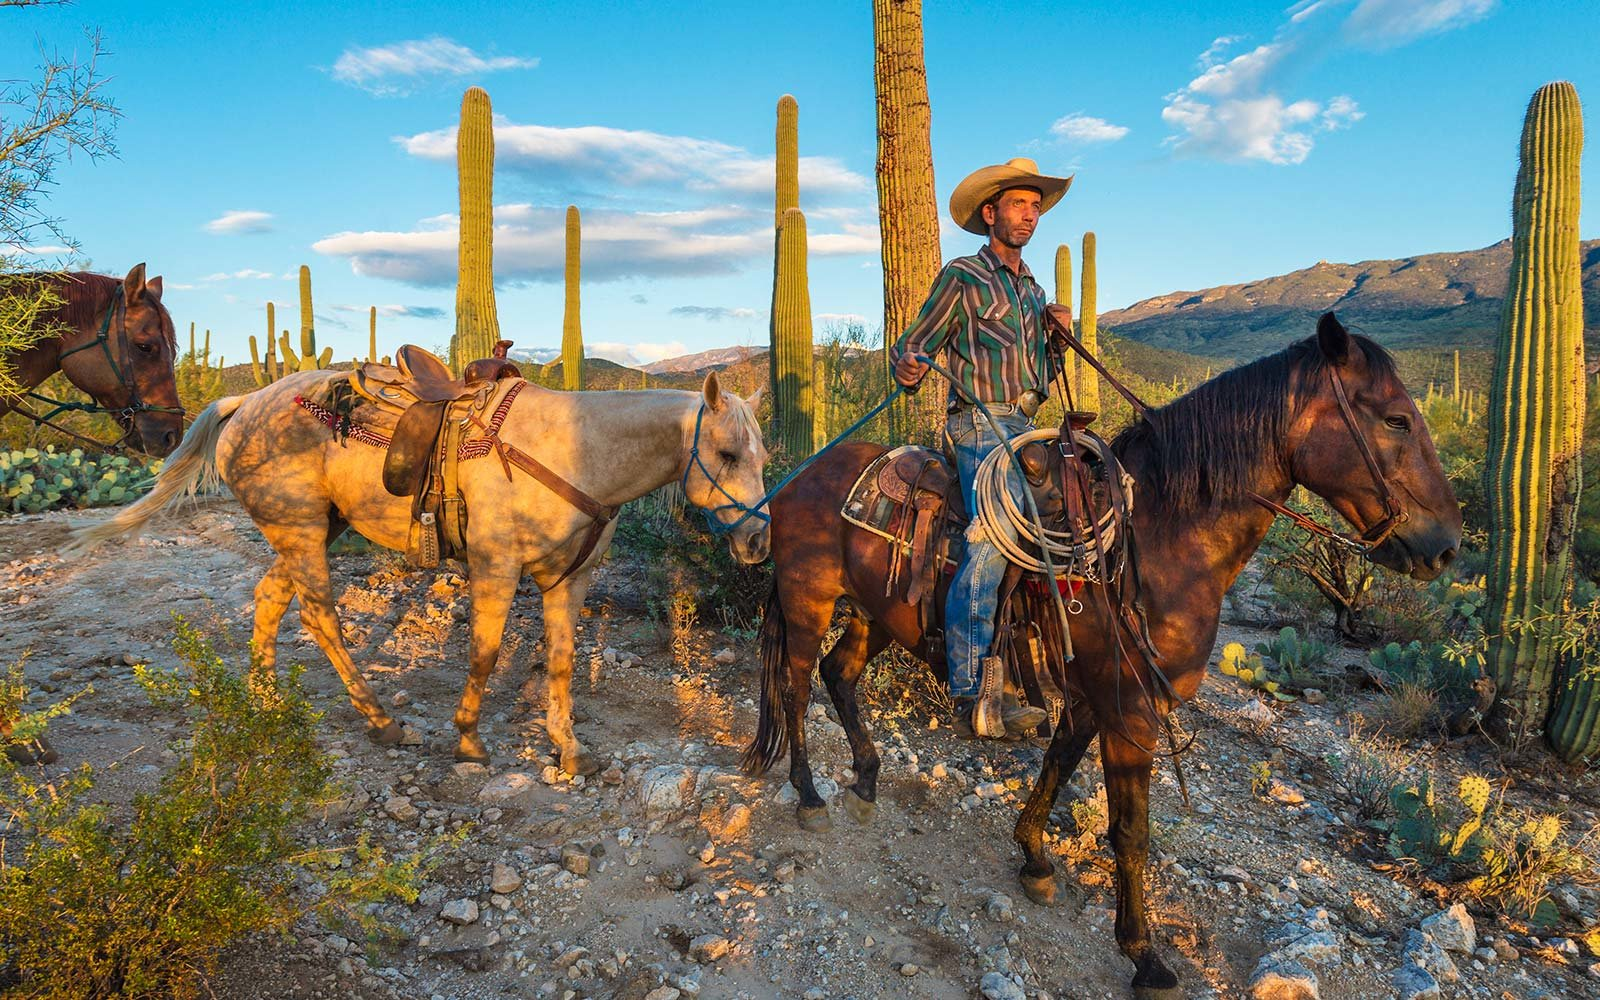 United States of America, Arizona, Tucson, Tanque verde Ranch, horse hike in the middle of the desert